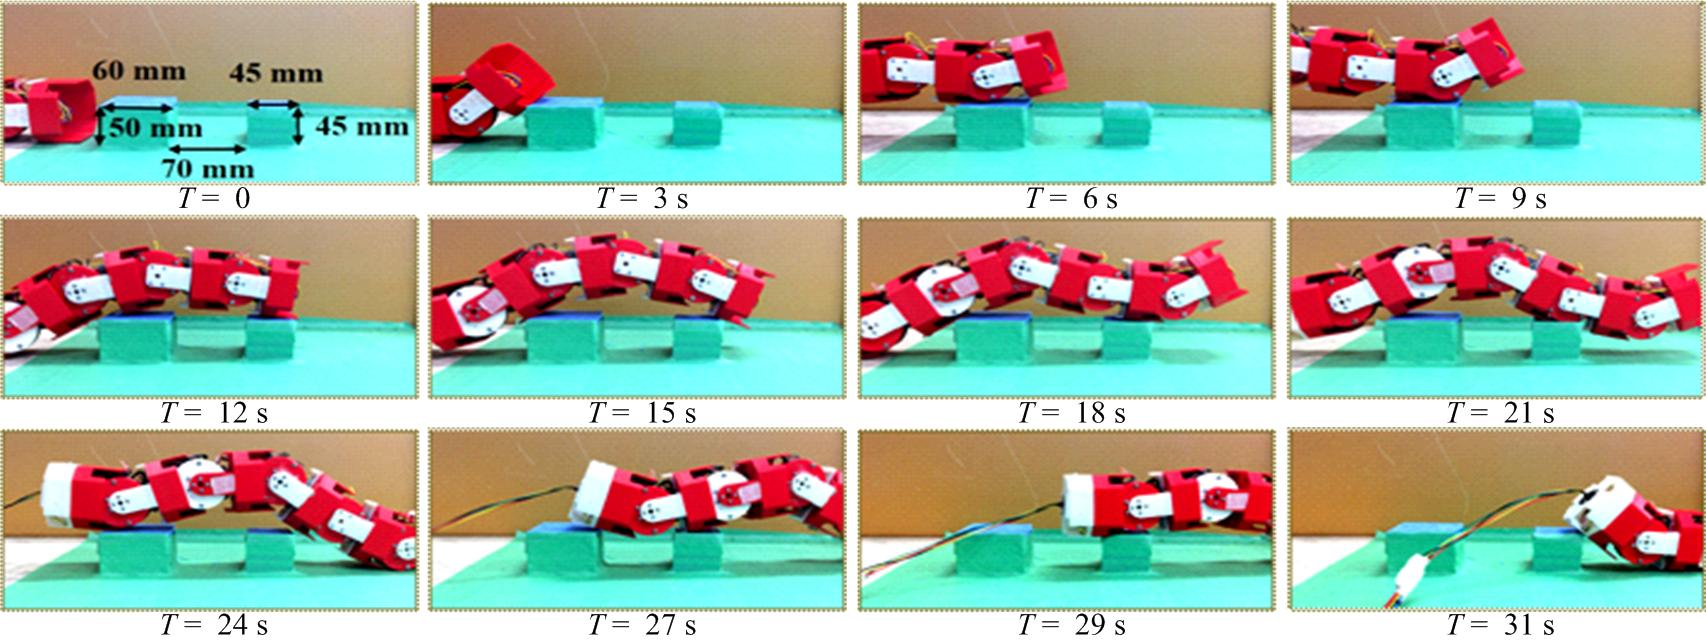 Design and Development of a Wheel-less Snake Robot with Active Stiffness Control for Adaptive Pedal Wave Locomotion